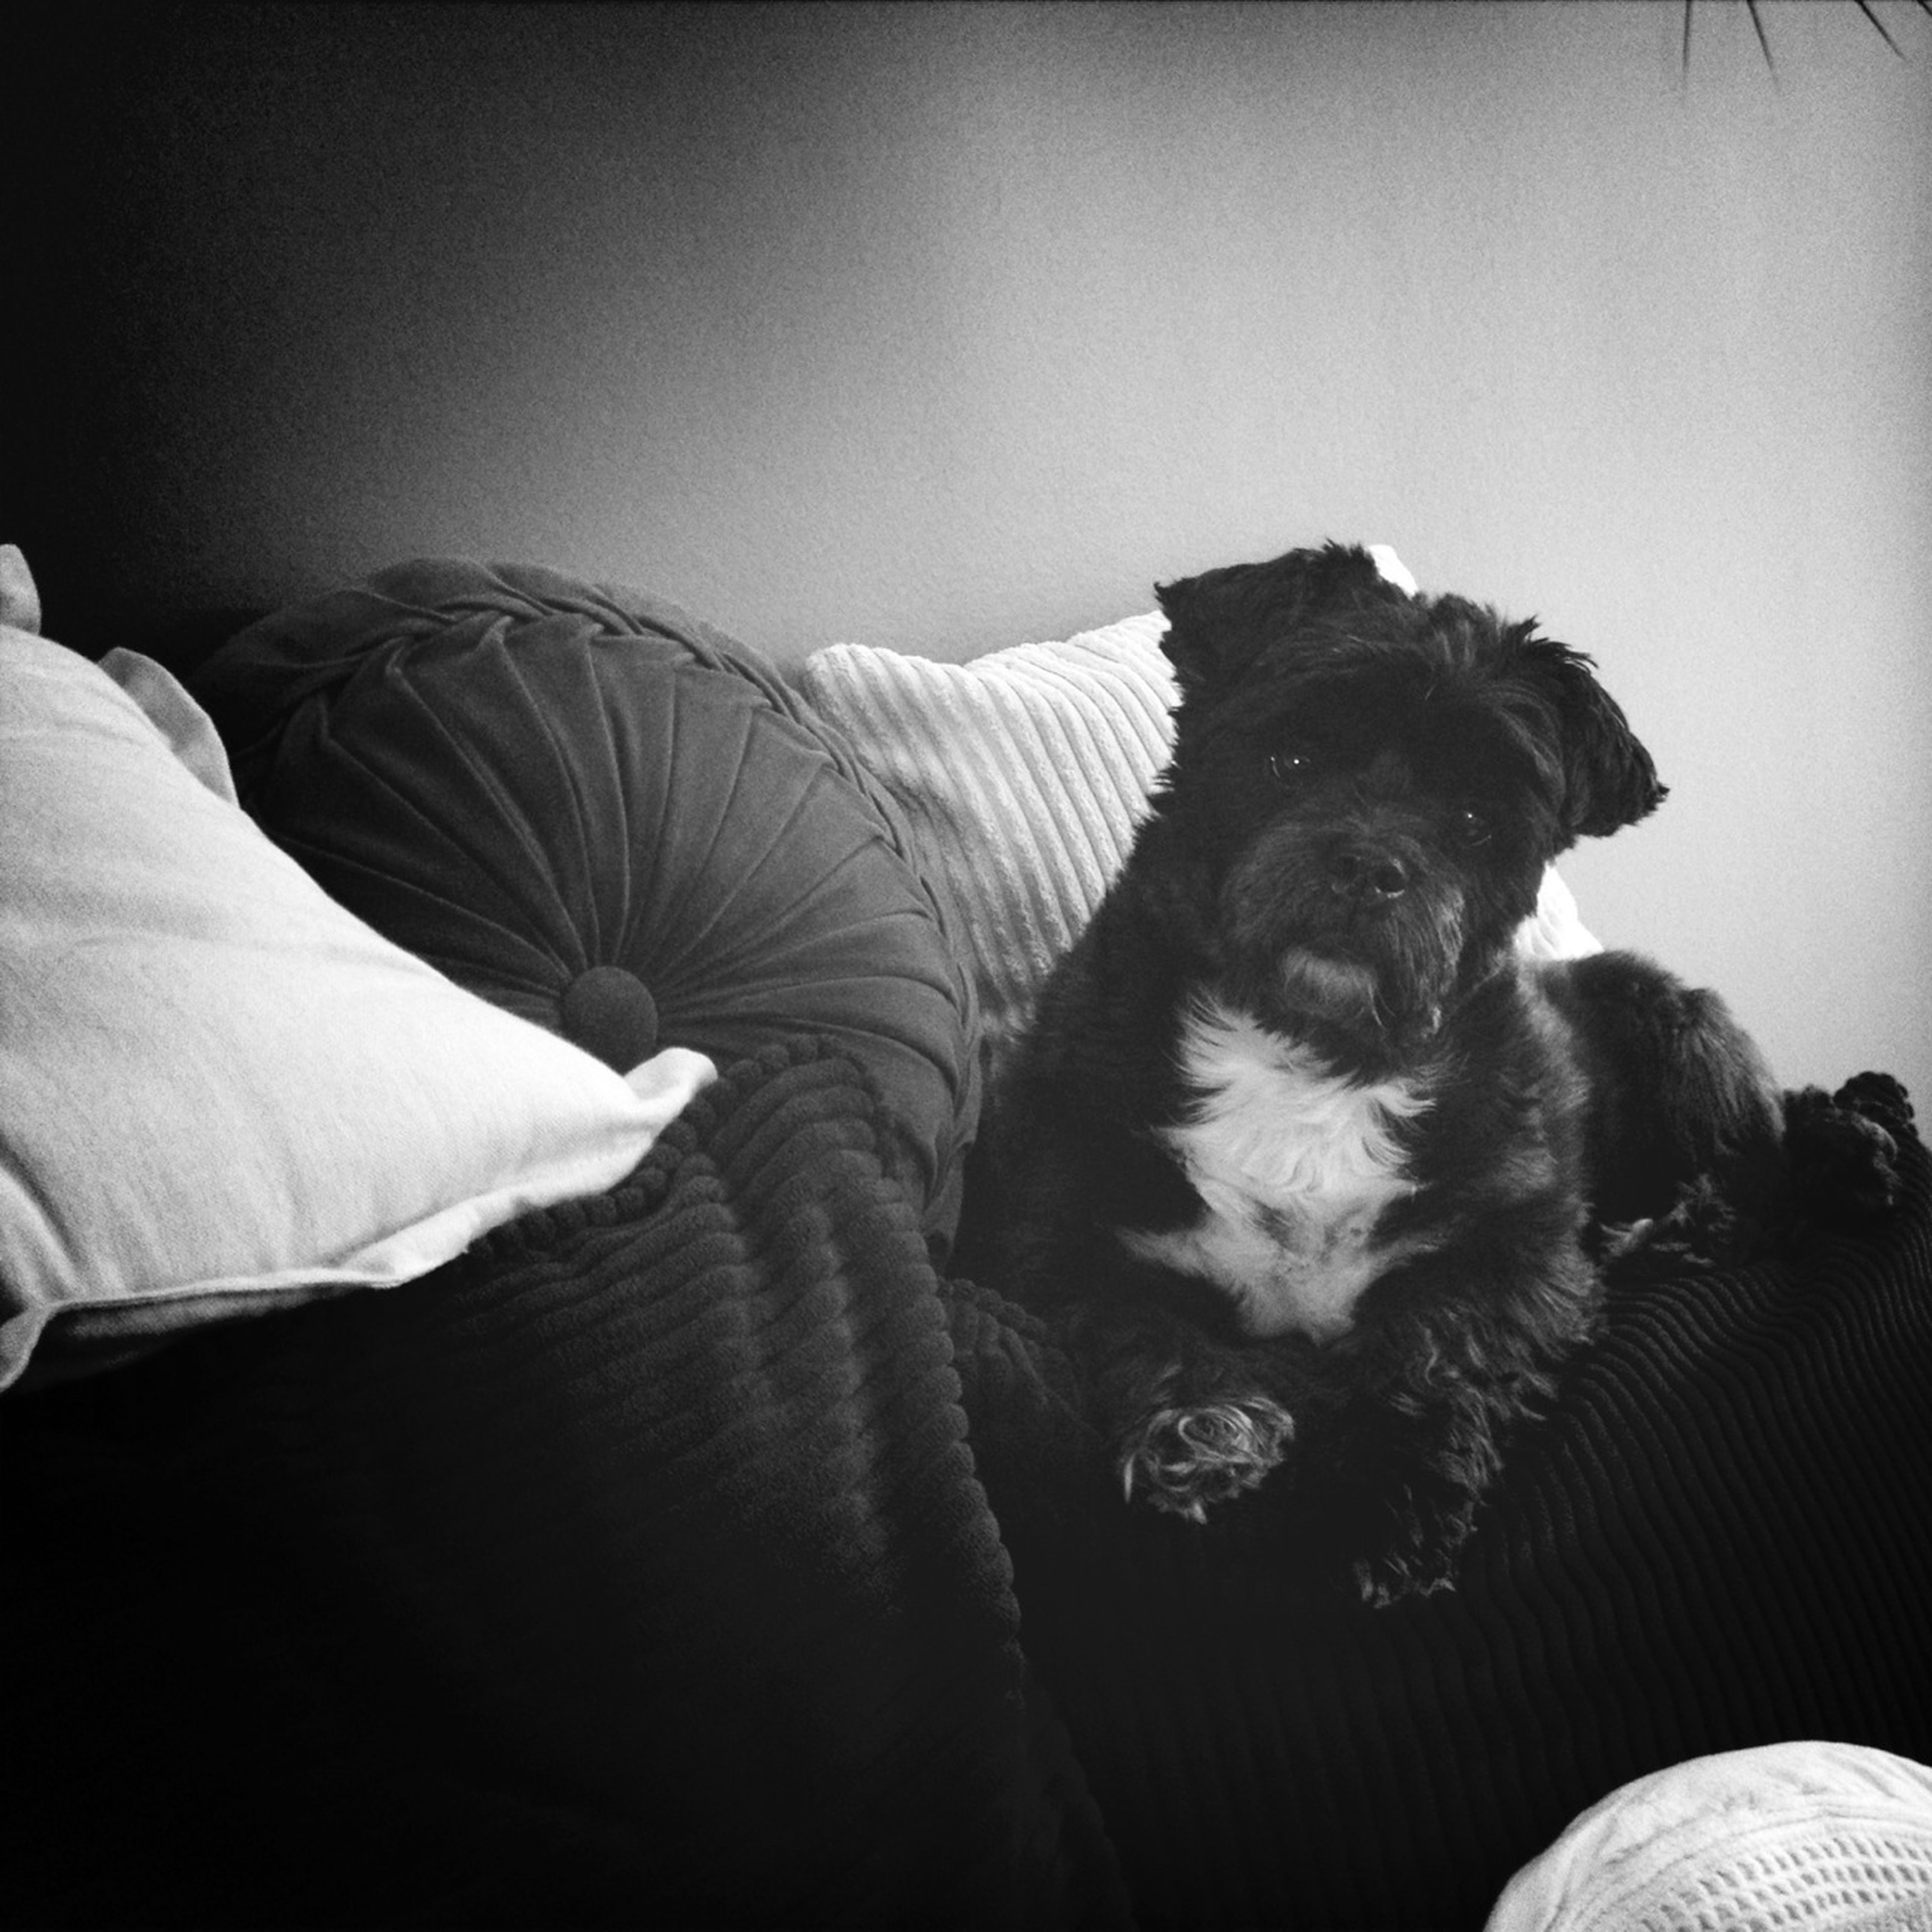 pets, domestic animals, indoors, animal themes, one animal, mammal, dog, relaxation, bed, home interior, resting, sofa, lying down, portrait, sitting, lifestyles, togetherness, looking at camera